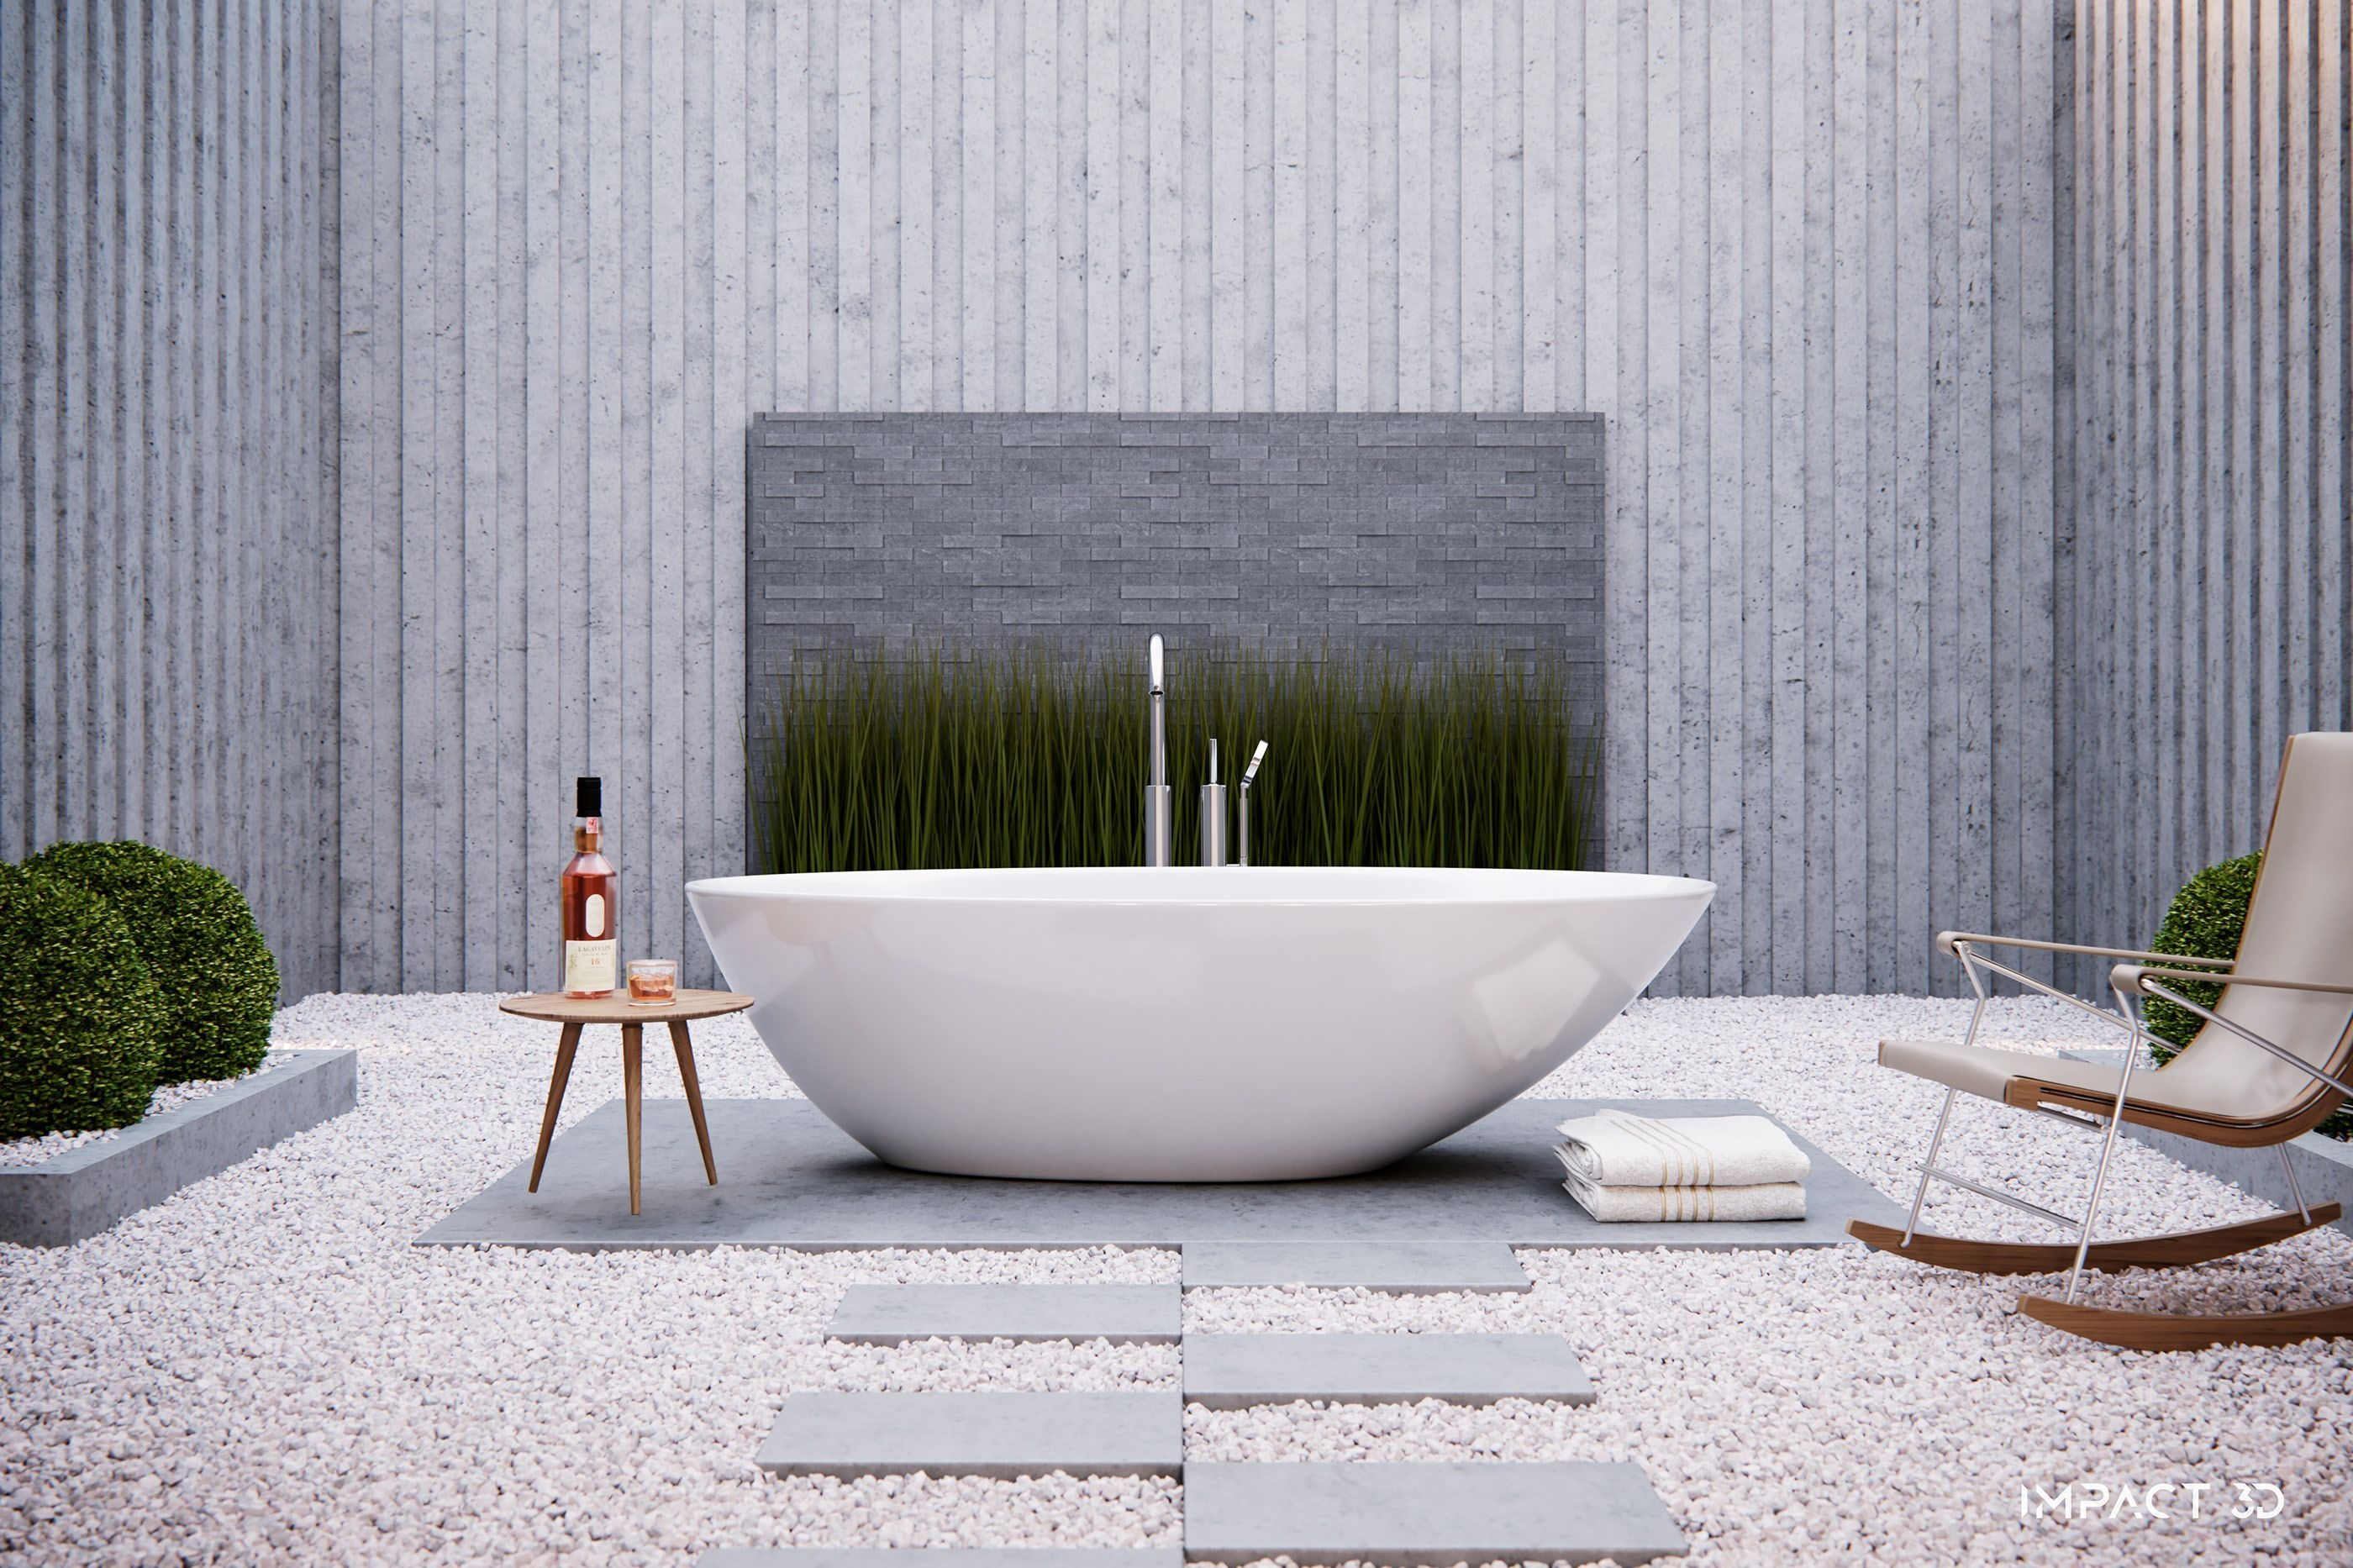 Jaquar Bath Accessory Visualizationimpact 3D Tools Used Corona Renderer Autodesk 3Ds Max